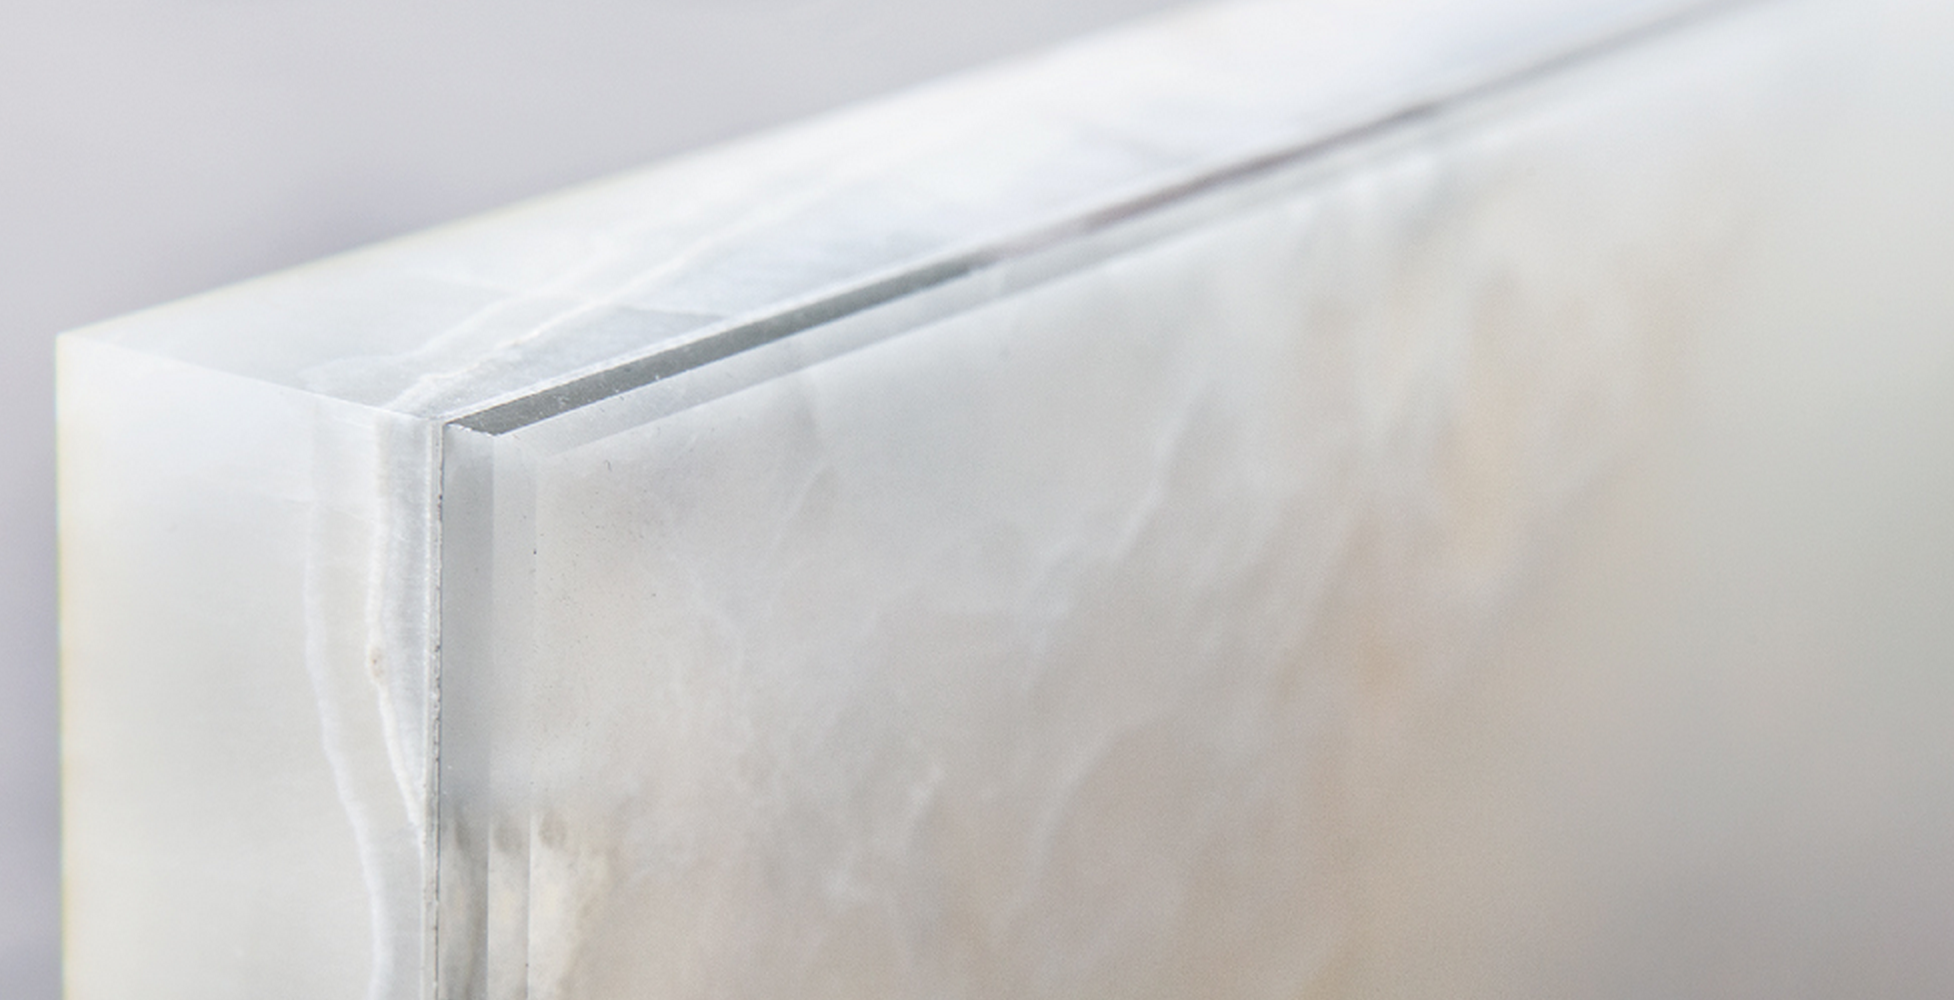 Dedalo stone marble and glass feature - Masha Shapiro Agency.png